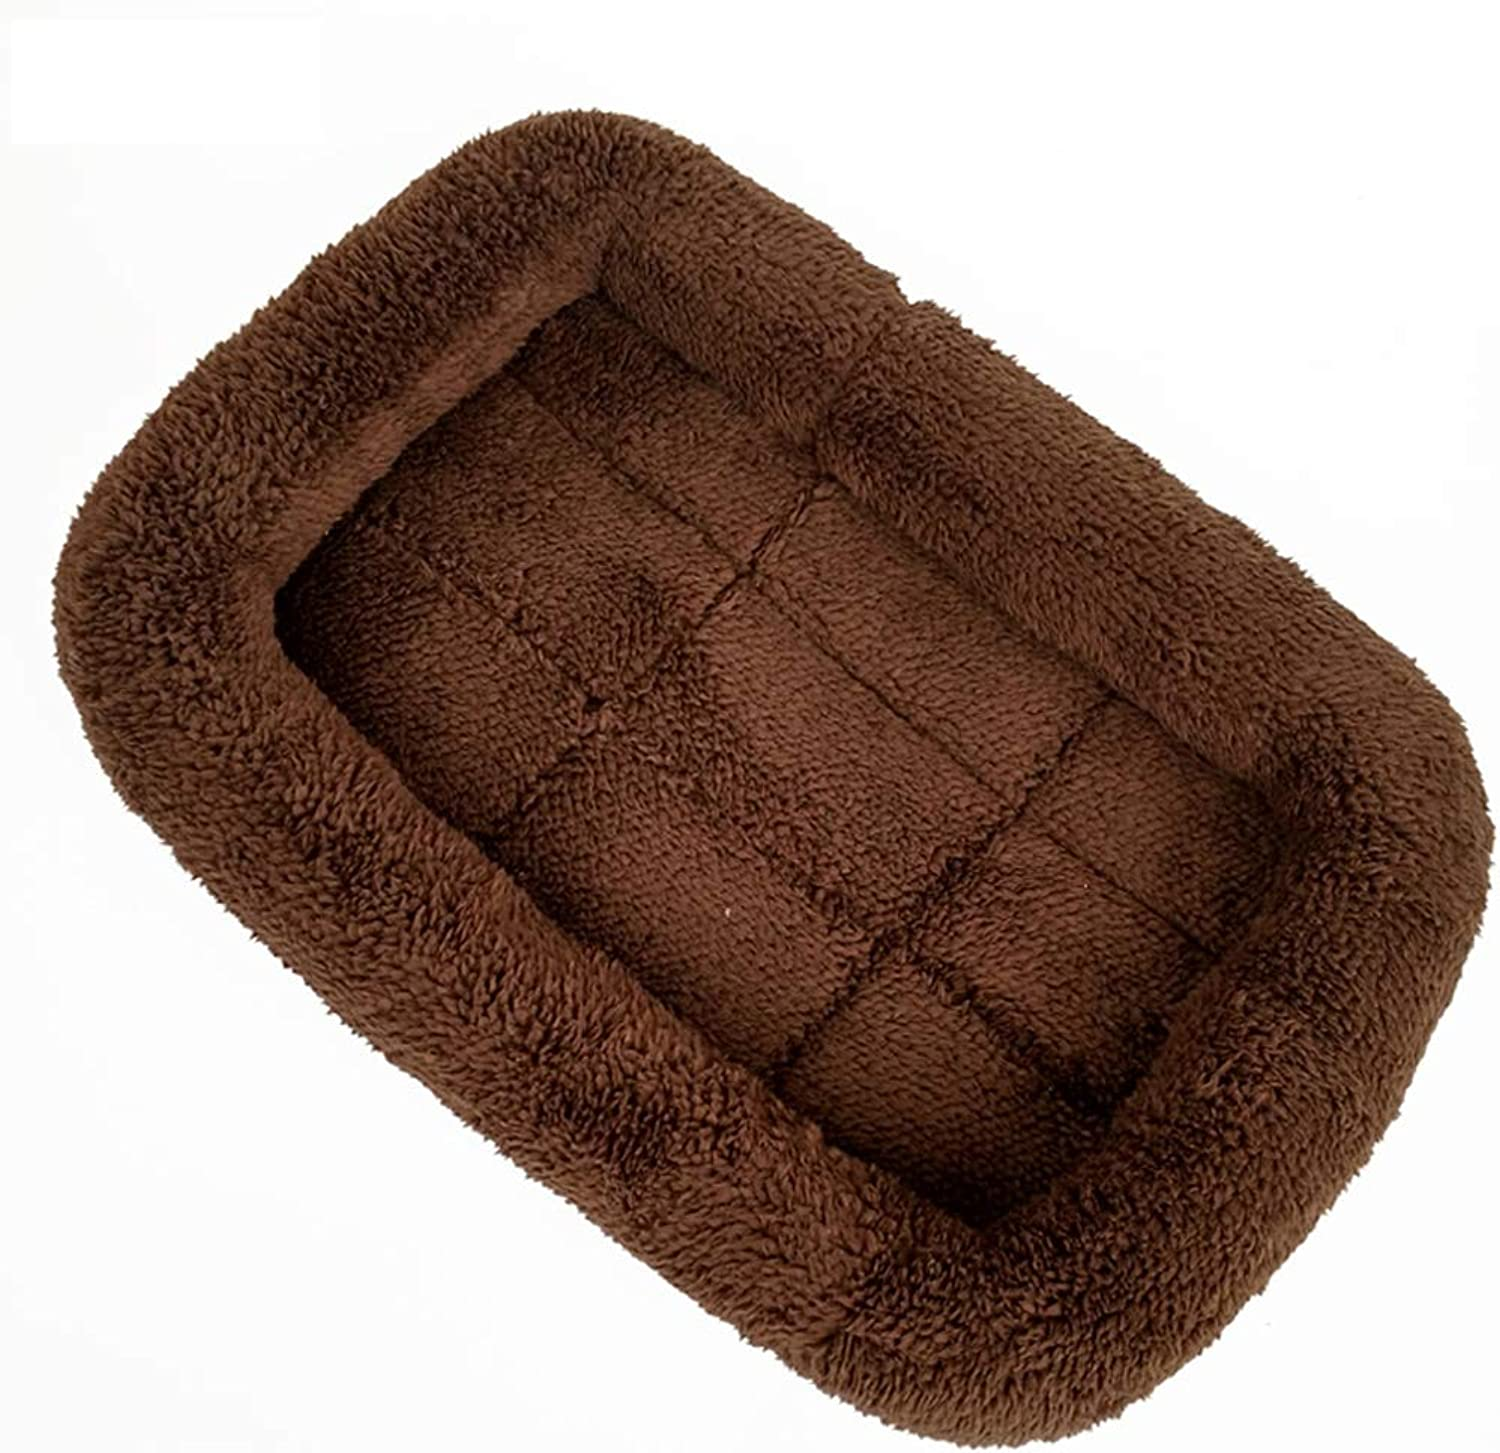 Kennel QIQIDEDIAN Cat Litter Pet Nest Dog Pad Teddy Cat Mat Pet Nest Dog Mattress Puppy Dog Supplies Dog Pad (color   Brown, Size   M 27  40cm)